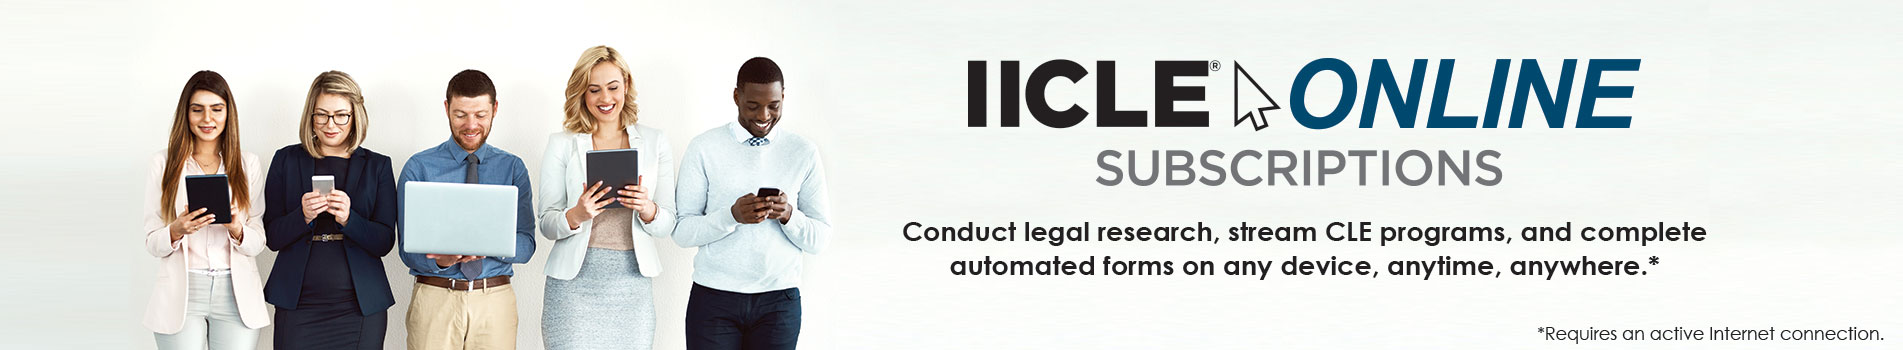 IICLE Online Subscriptions